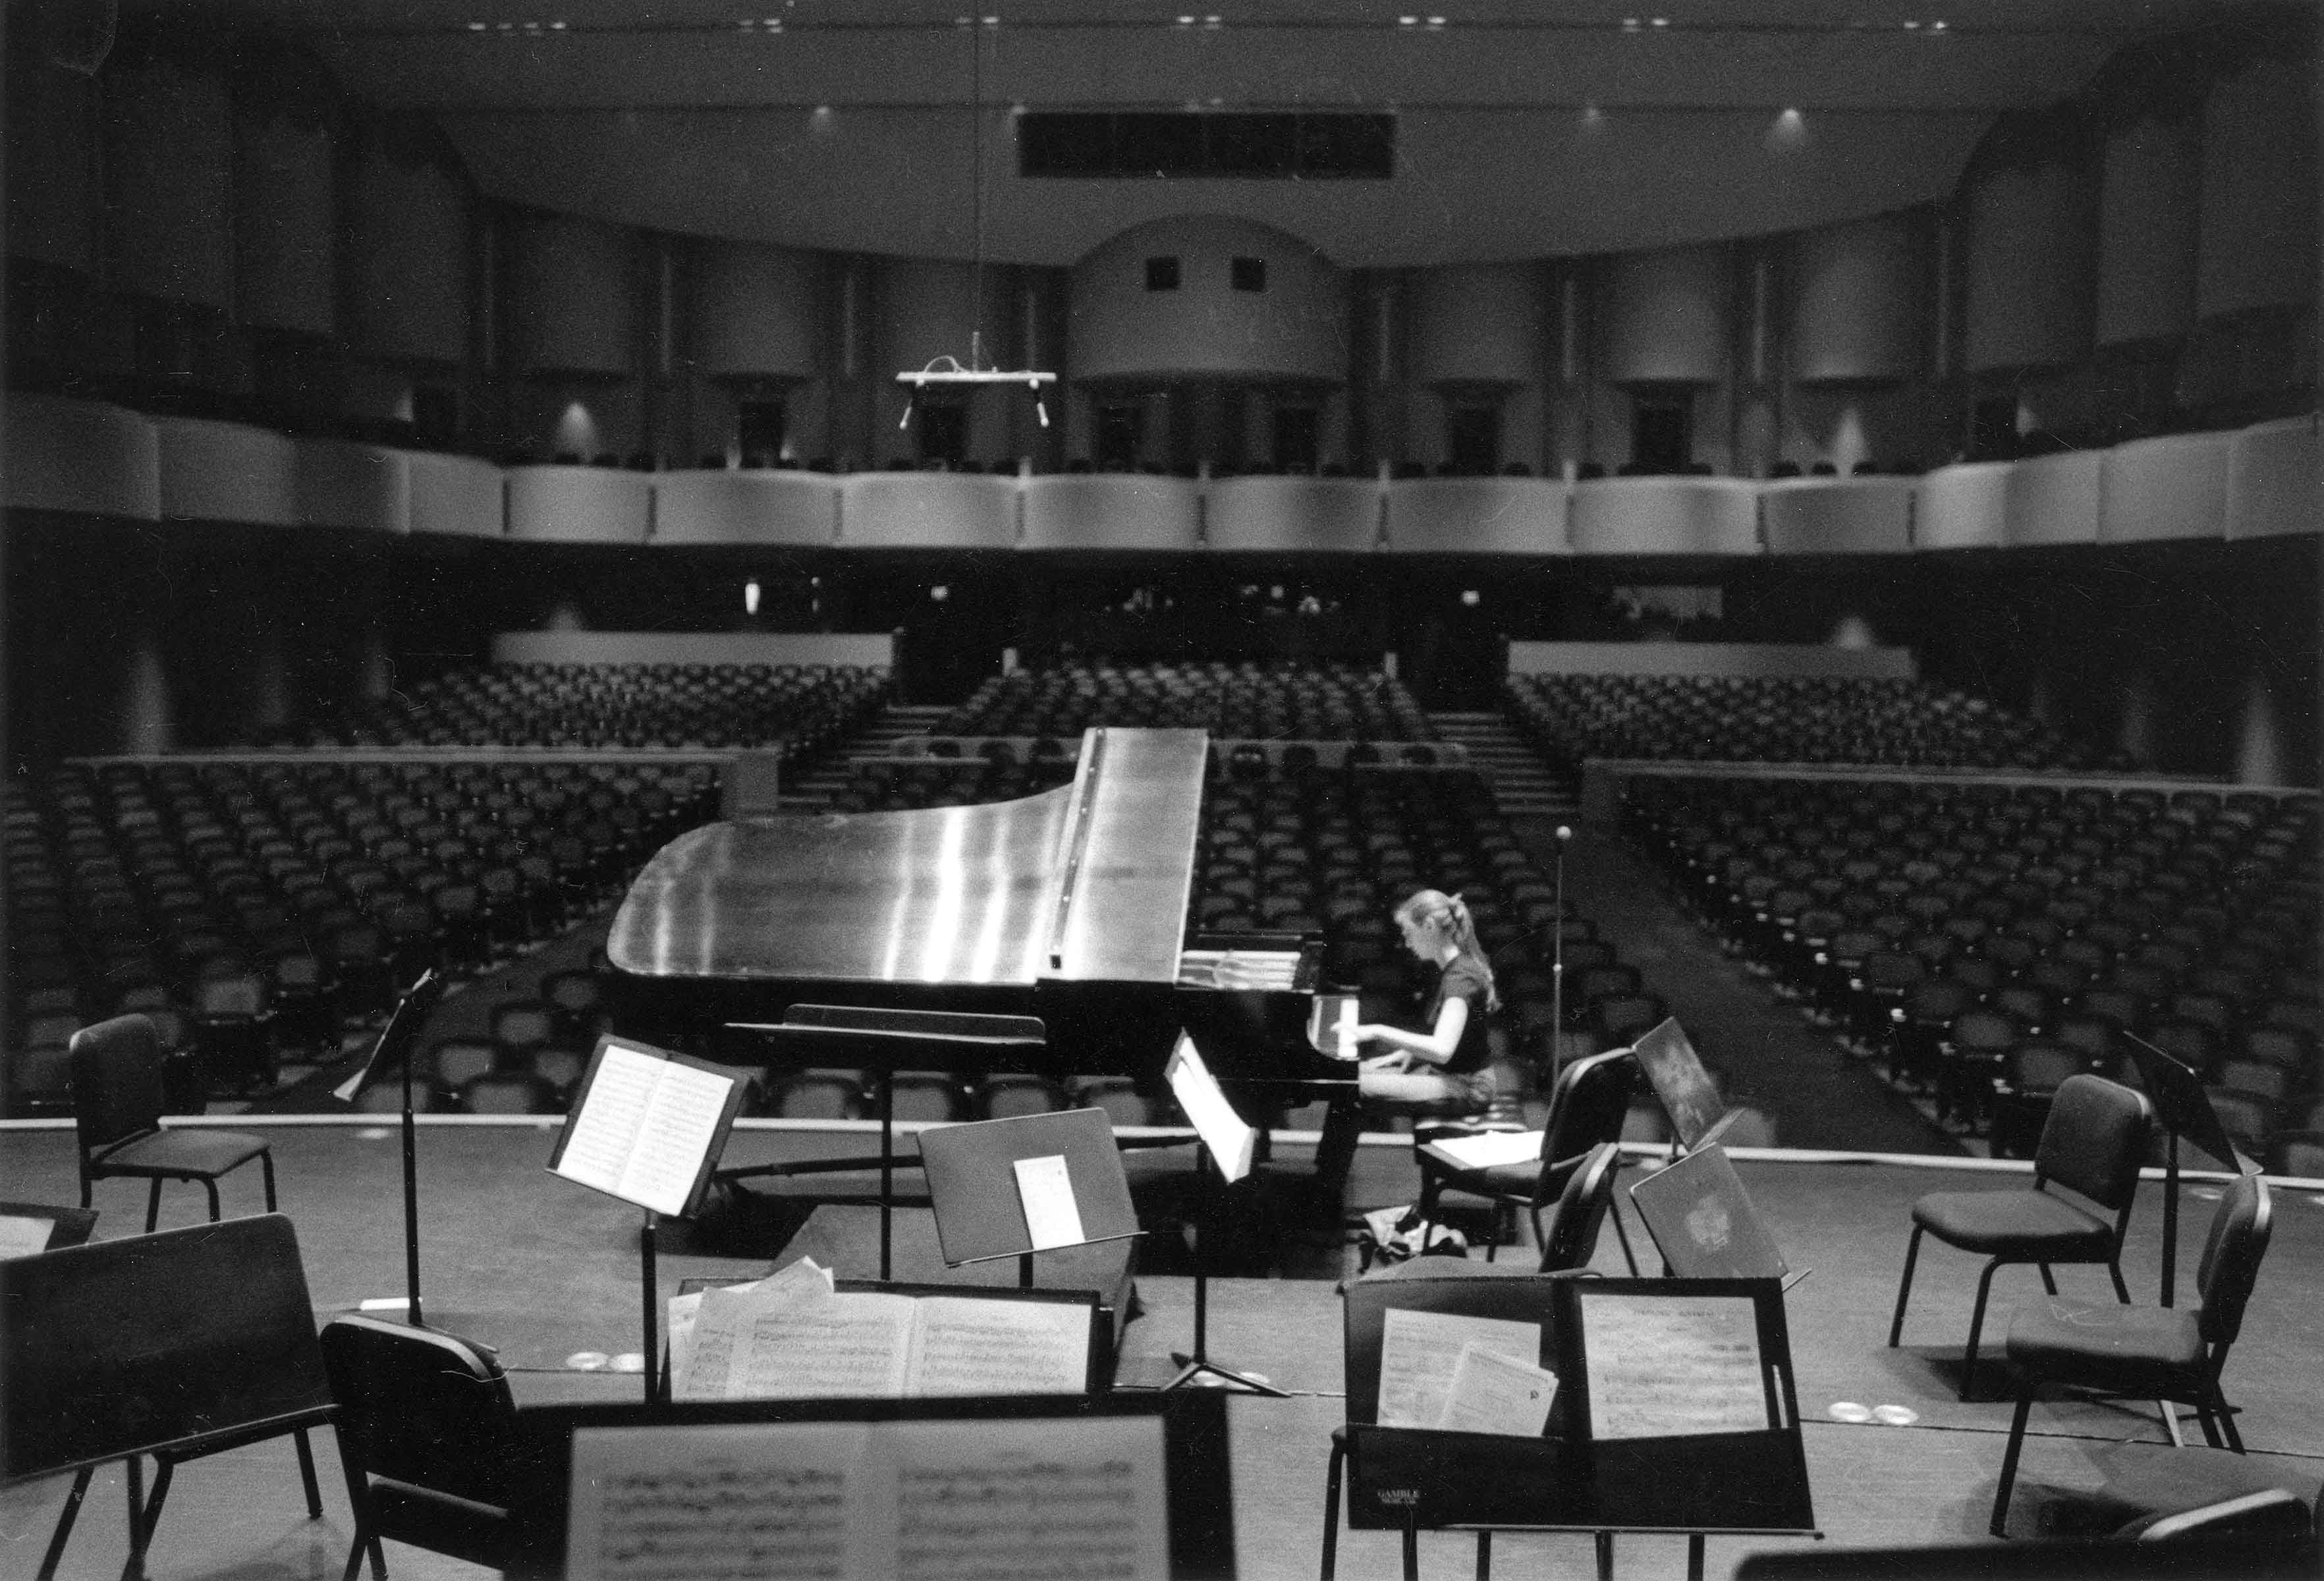 Practicing in the concert Hall